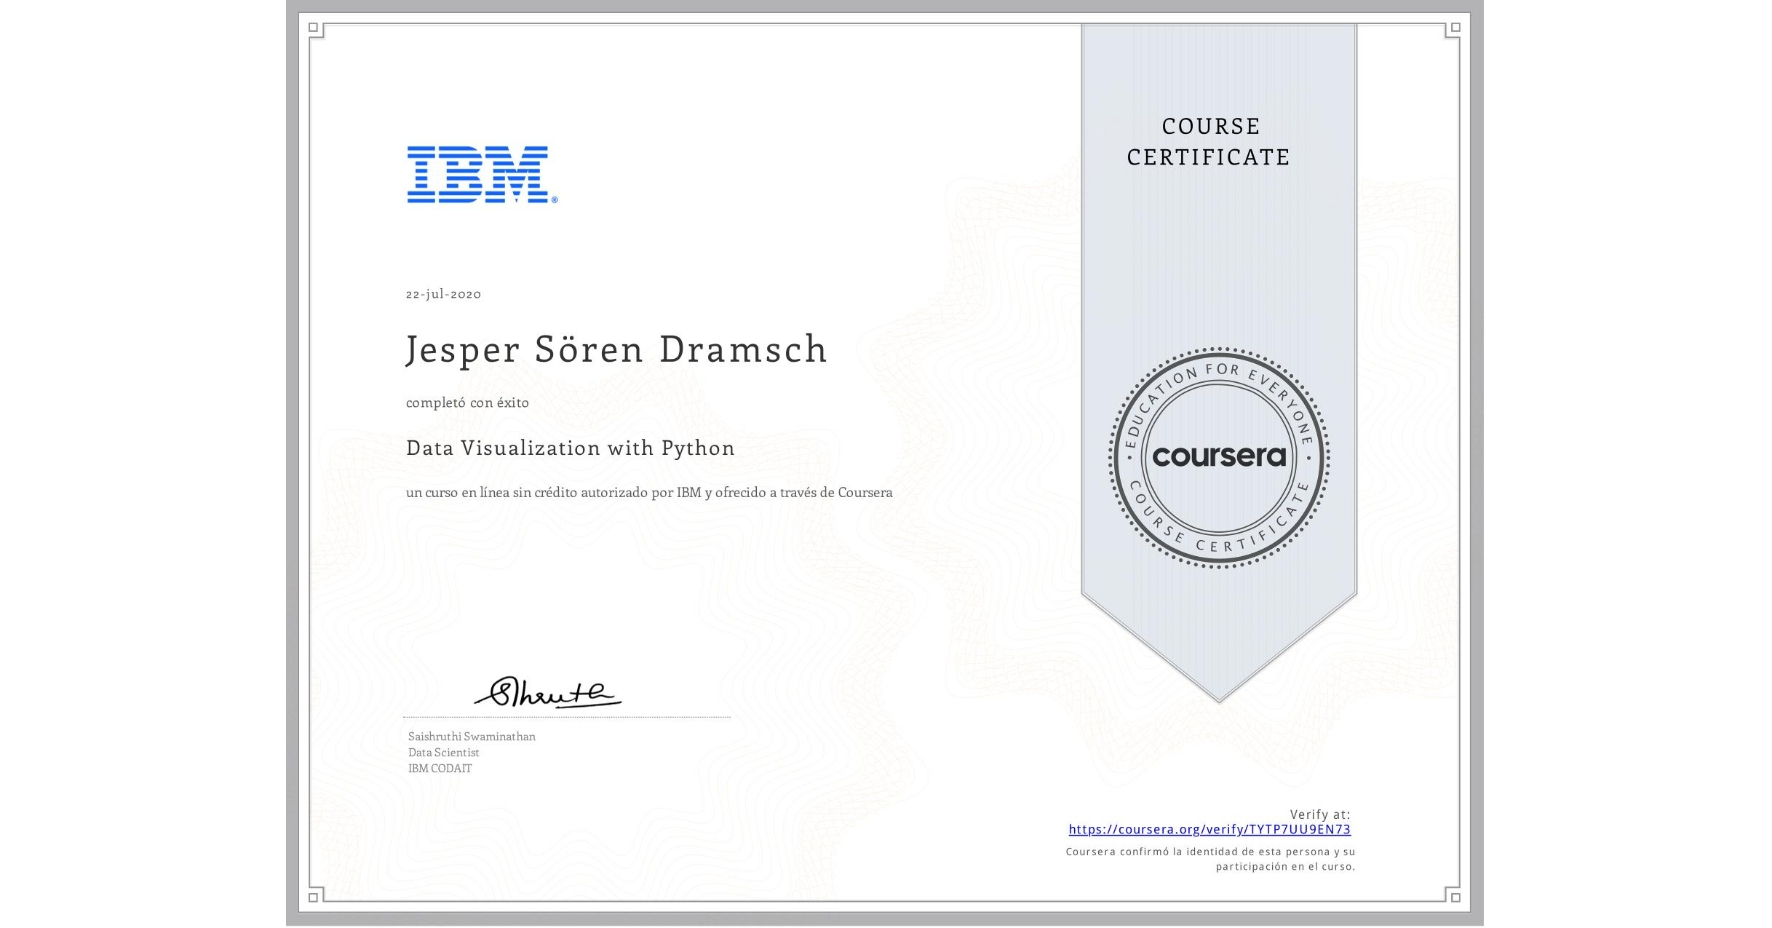 View certificate for Jesper Sören Dramsch, Data Visualization with Python, an online non-credit course authorized by IBM and offered through Coursera